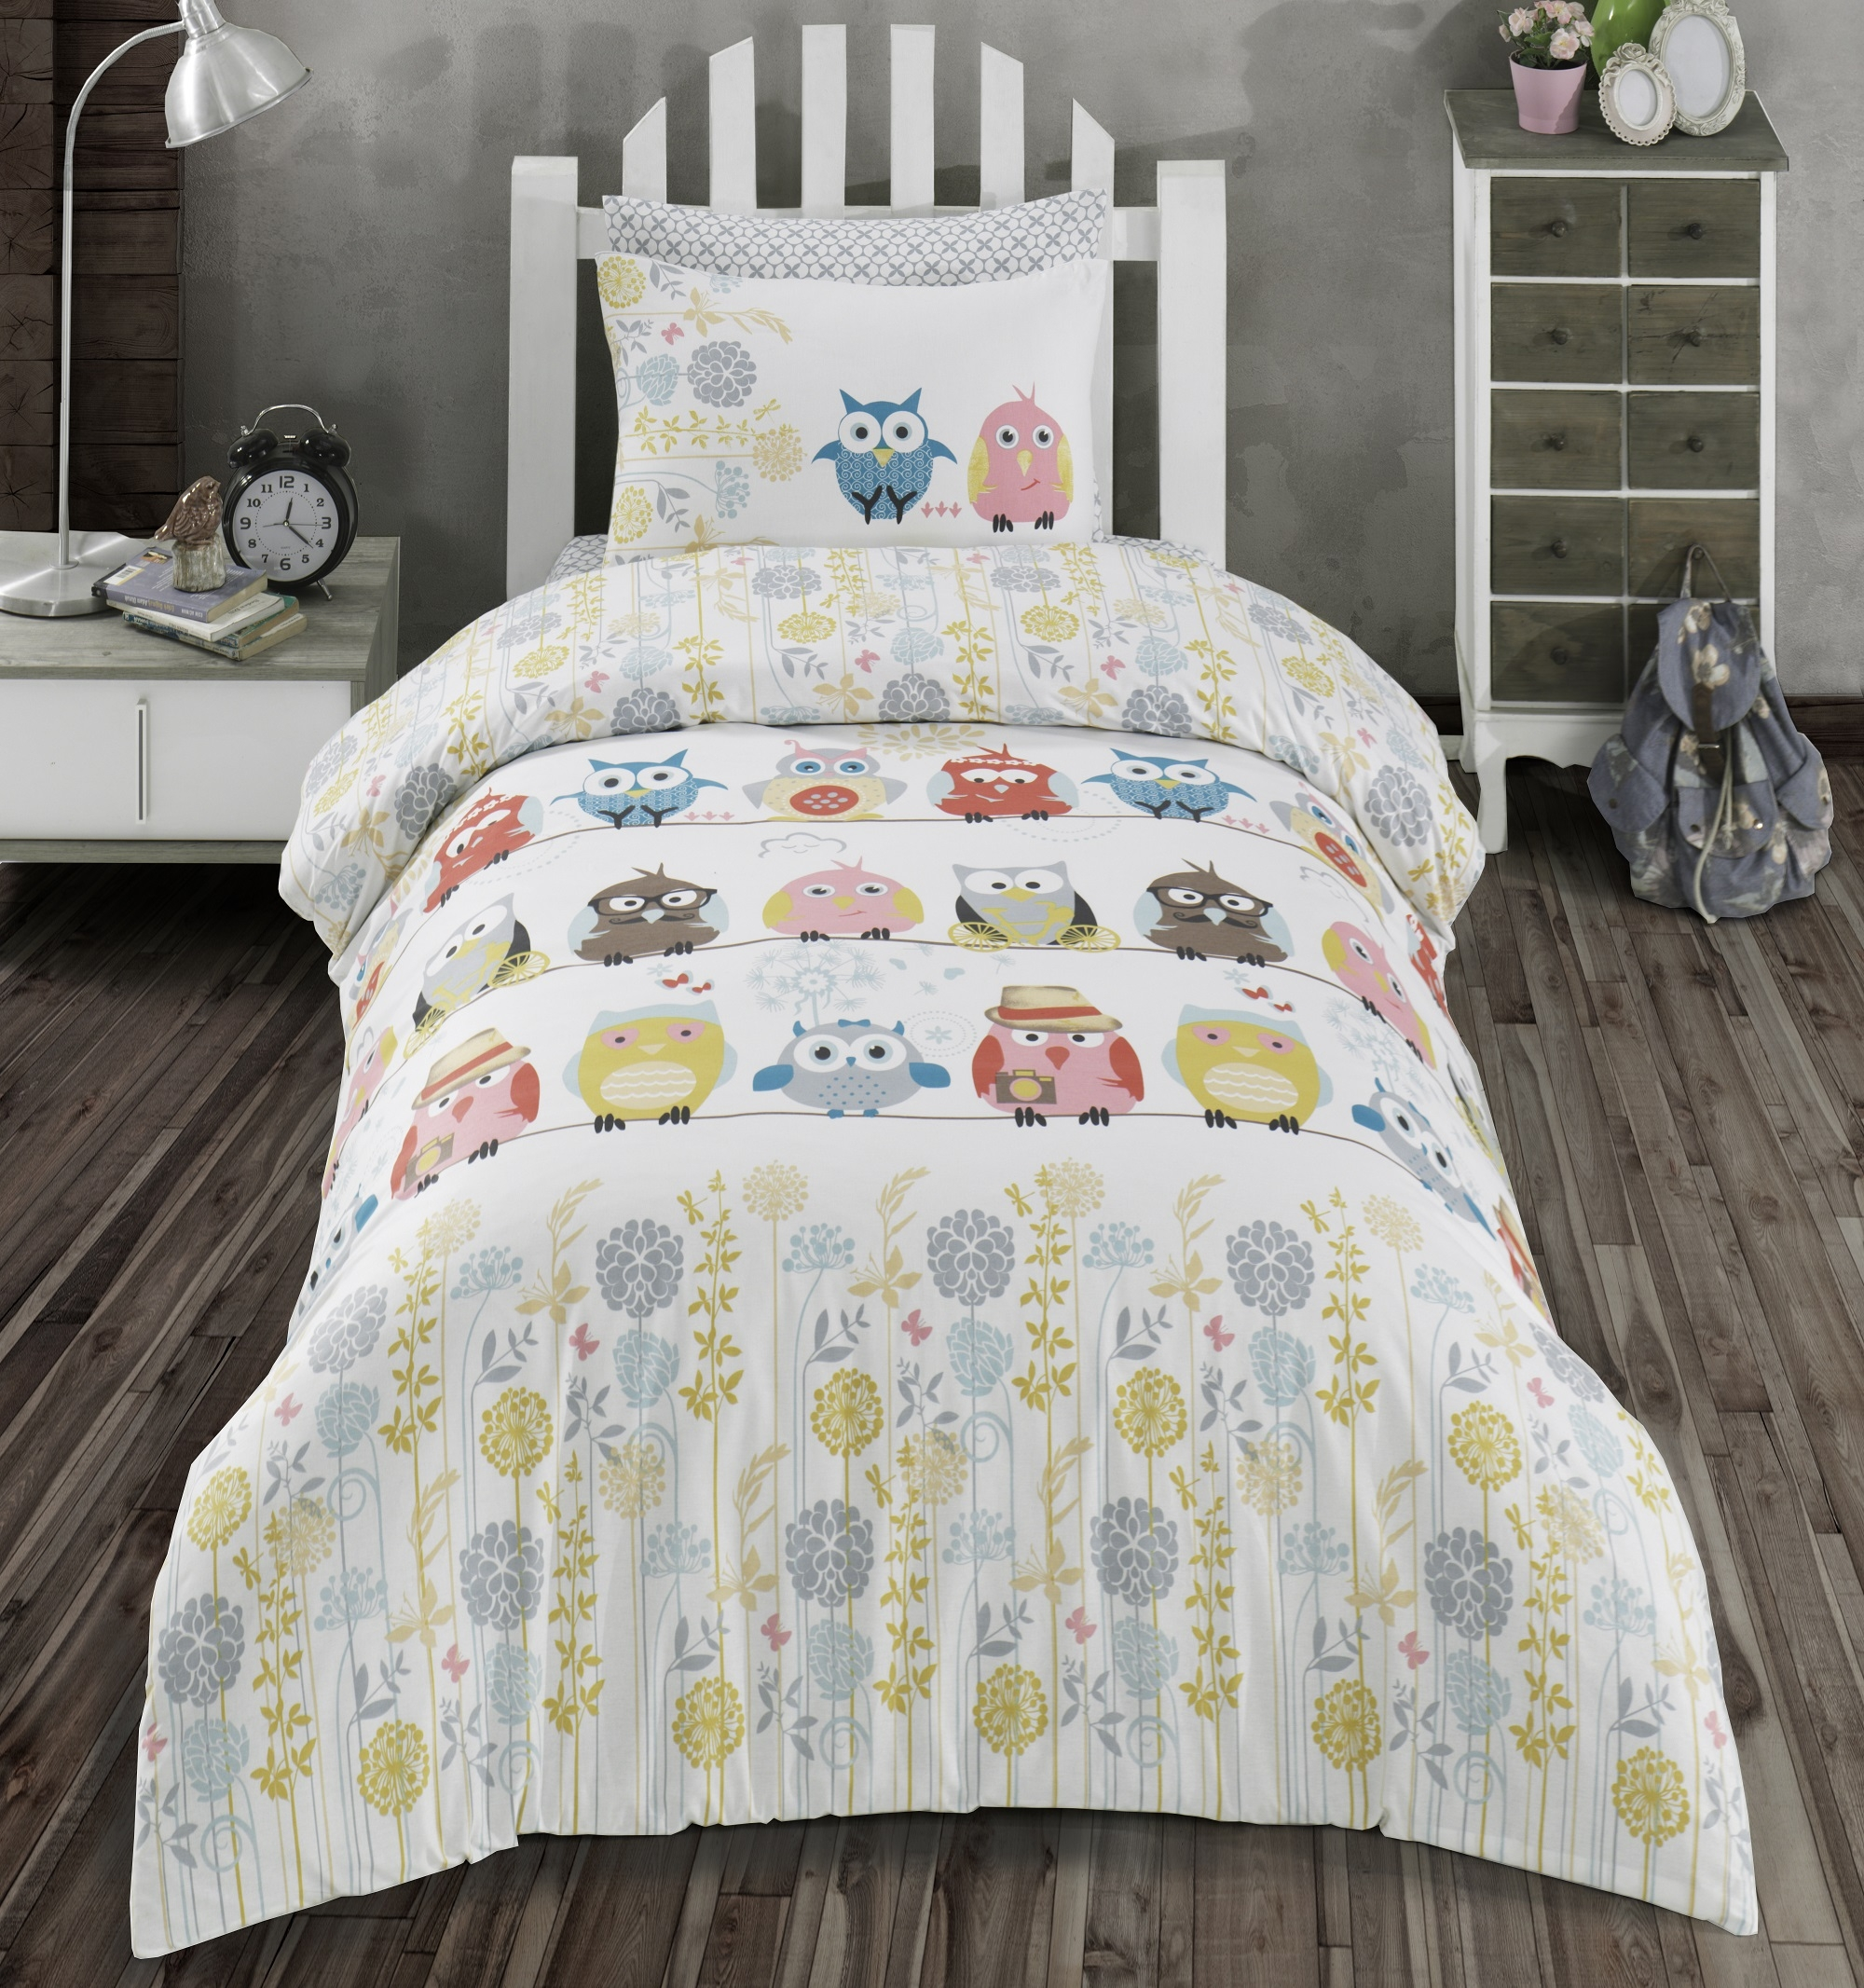 Lenjerie de pat copii Ranforce Owl V1 Multicolor-1 pers-140 x 200 cm